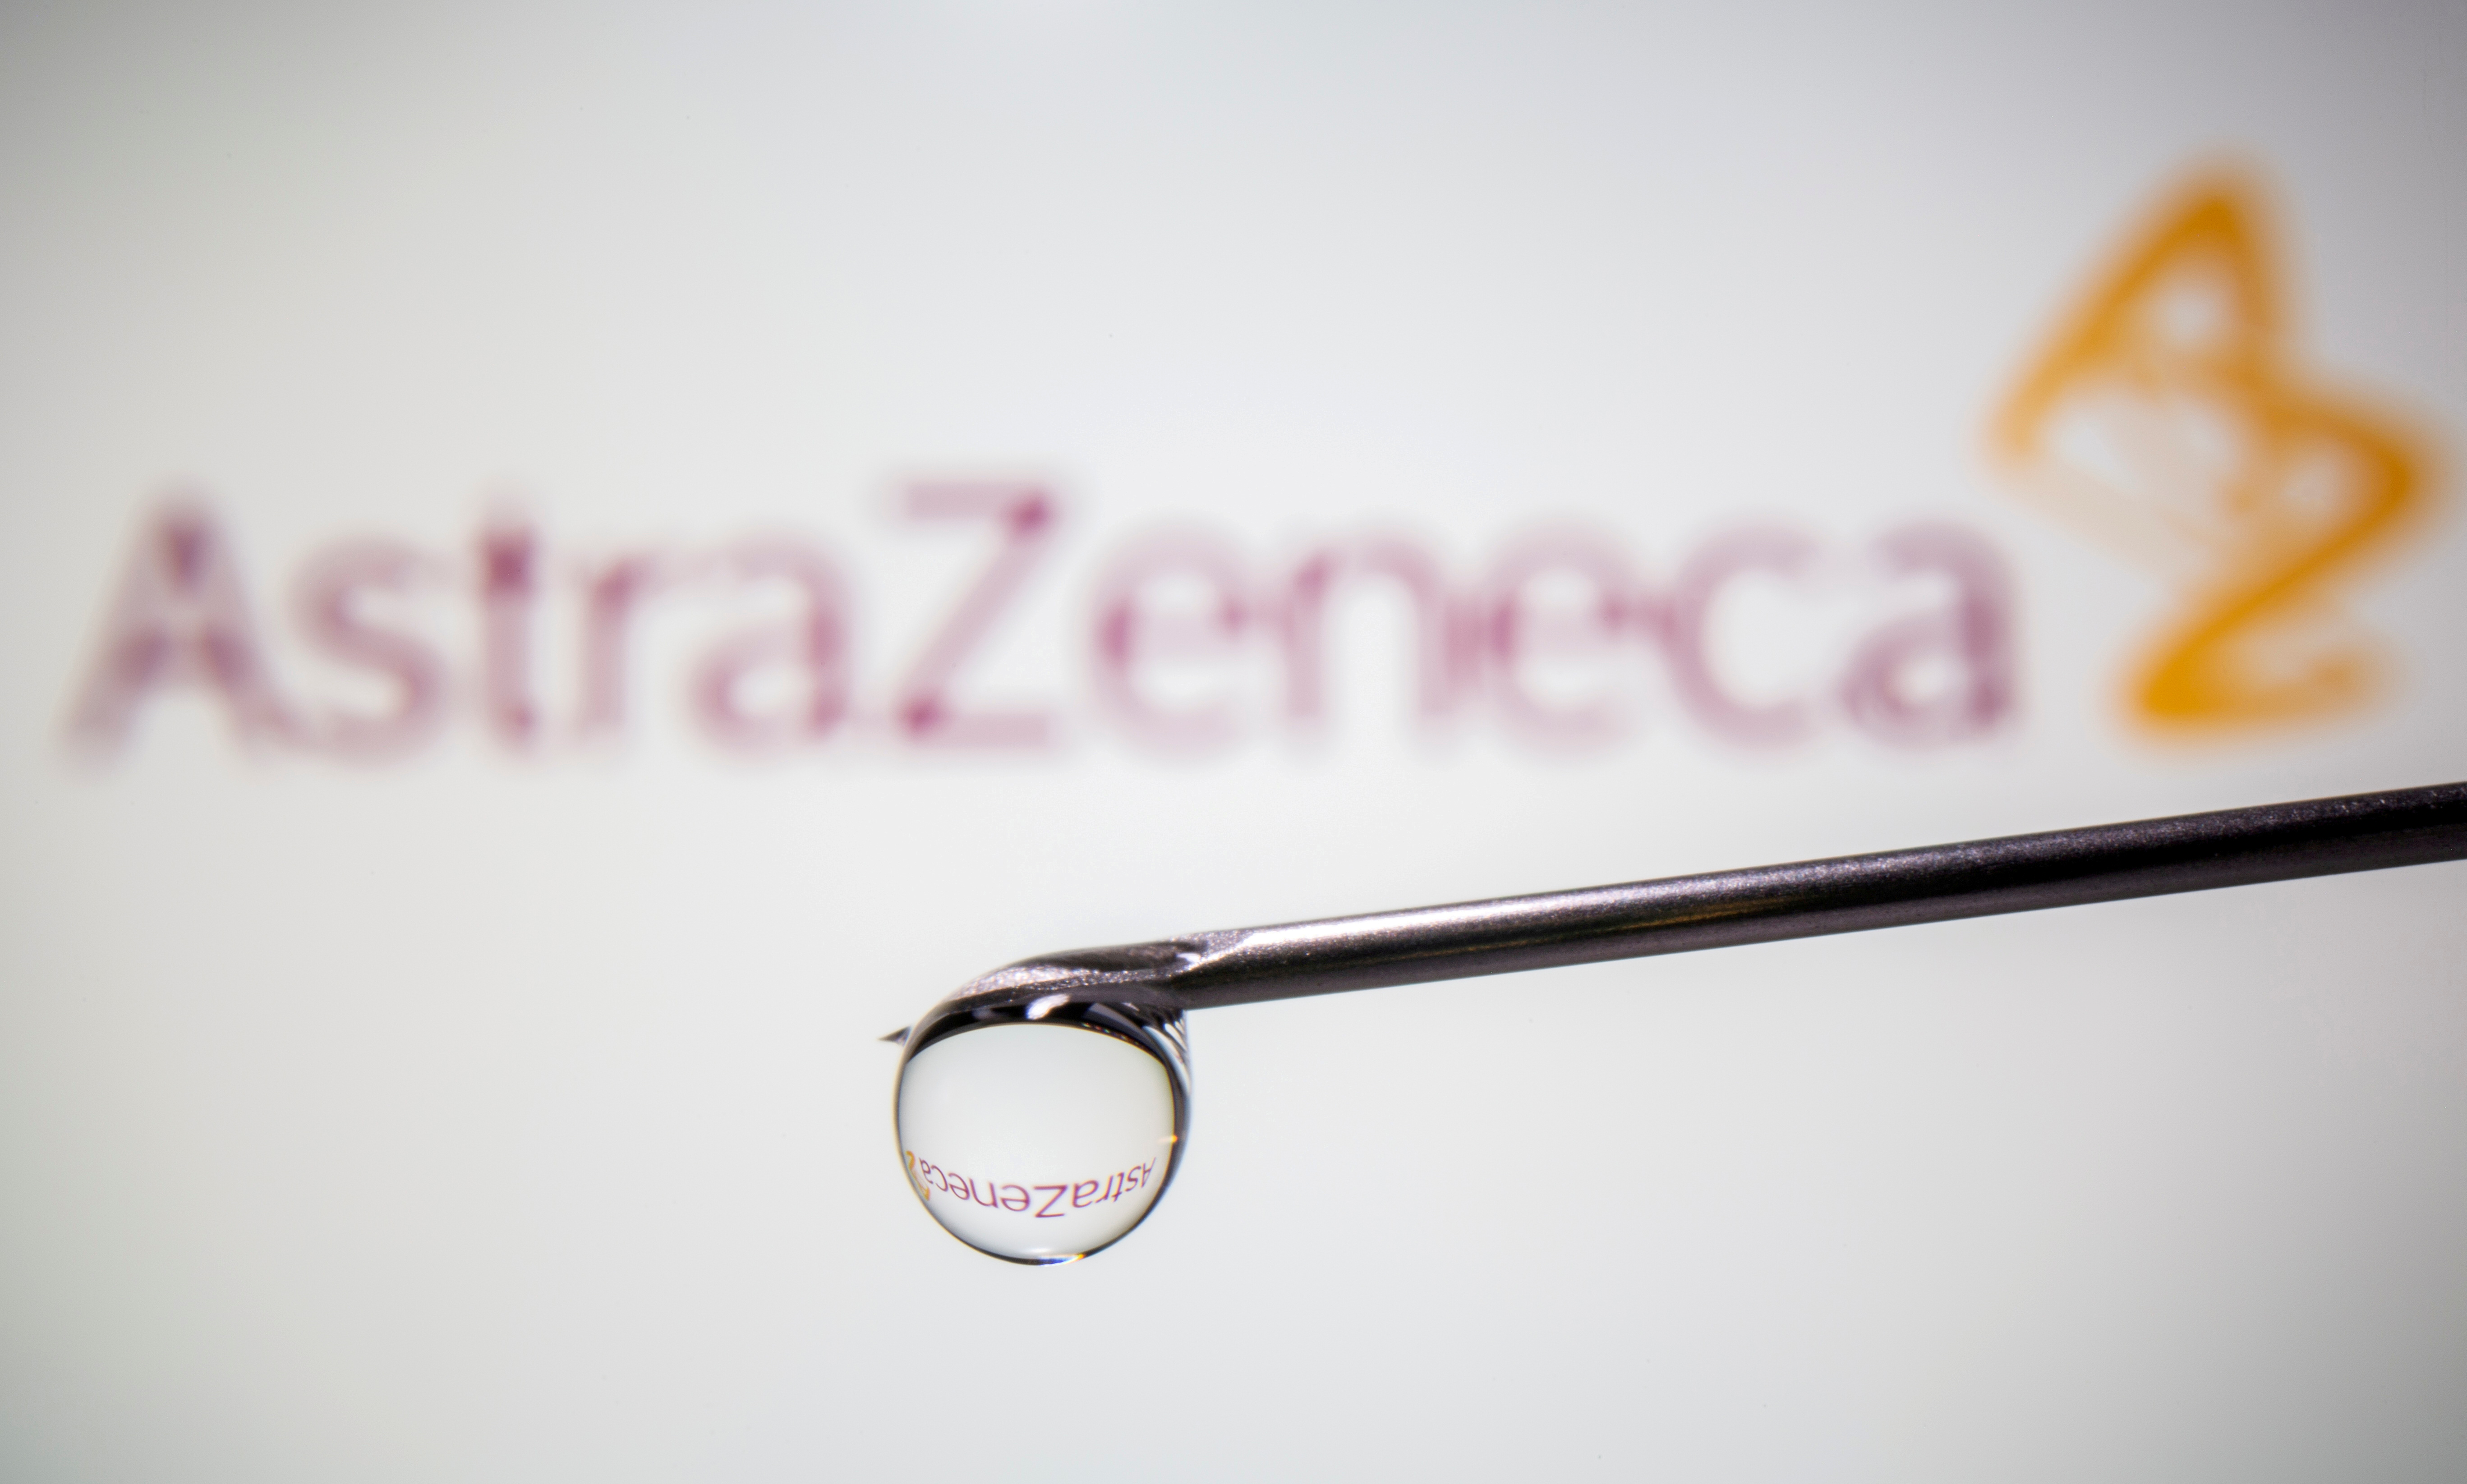 AstraZeneca's logo is reflected in a drop on a syringe needle in this illustration taken November 9, 2020. REUTERS/Dado Ruvic/Illustration